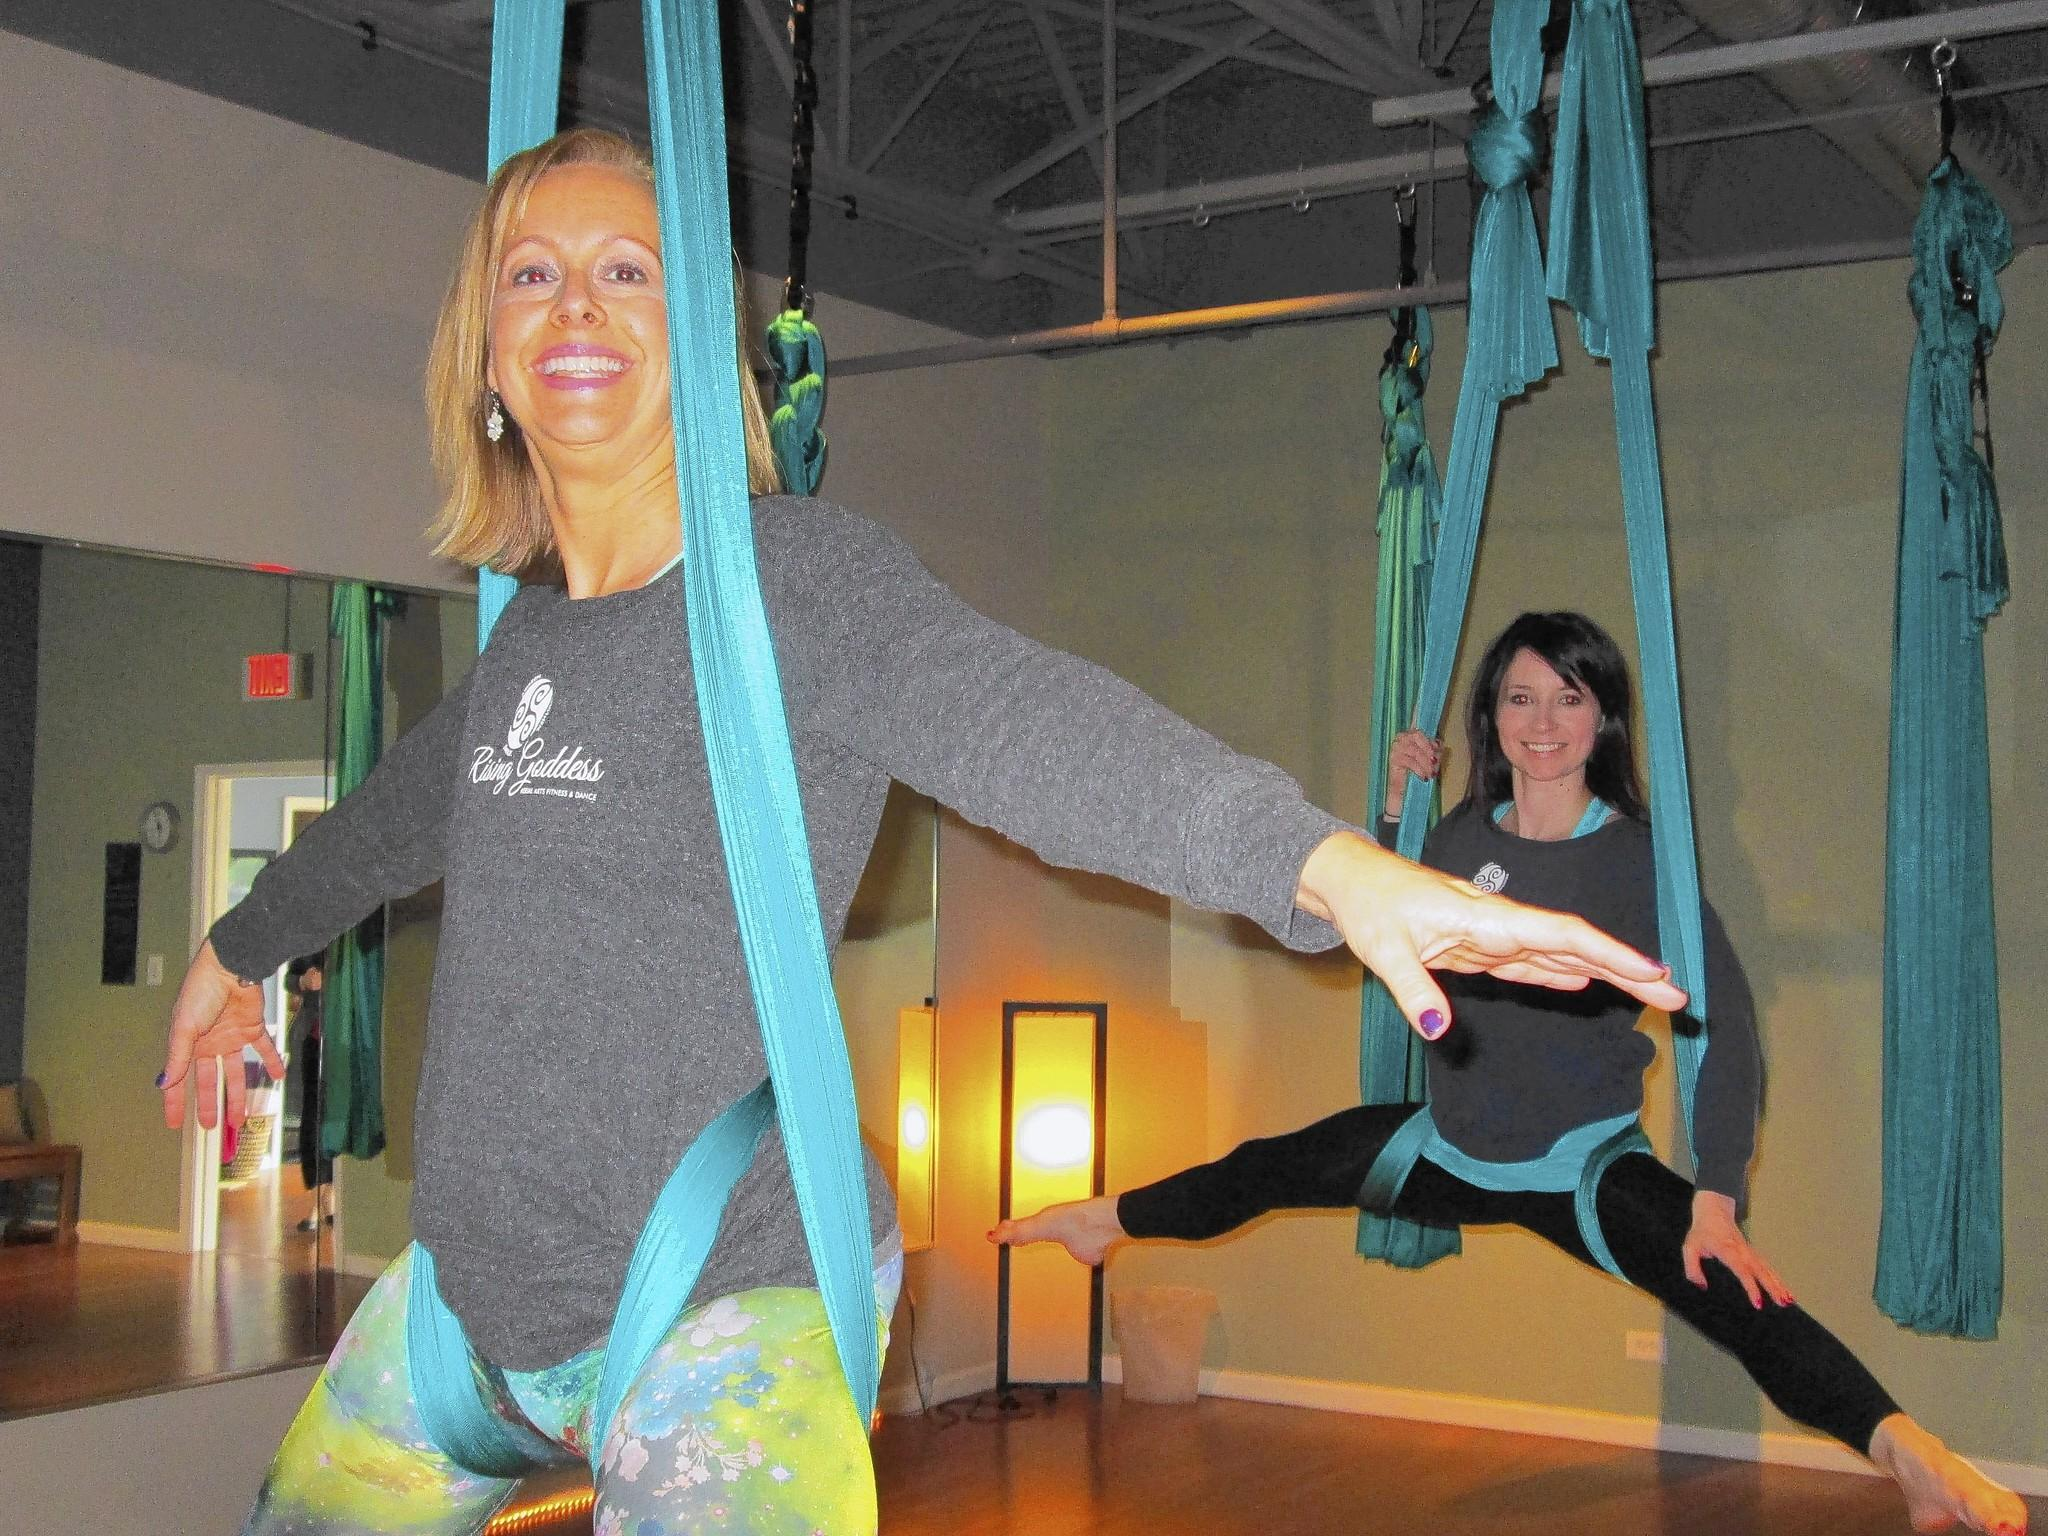 Barb Cassidy (front) and Michelle Tenuta (back) stretch on a hammock at their new aerial arts and fitness studio in Westmont.